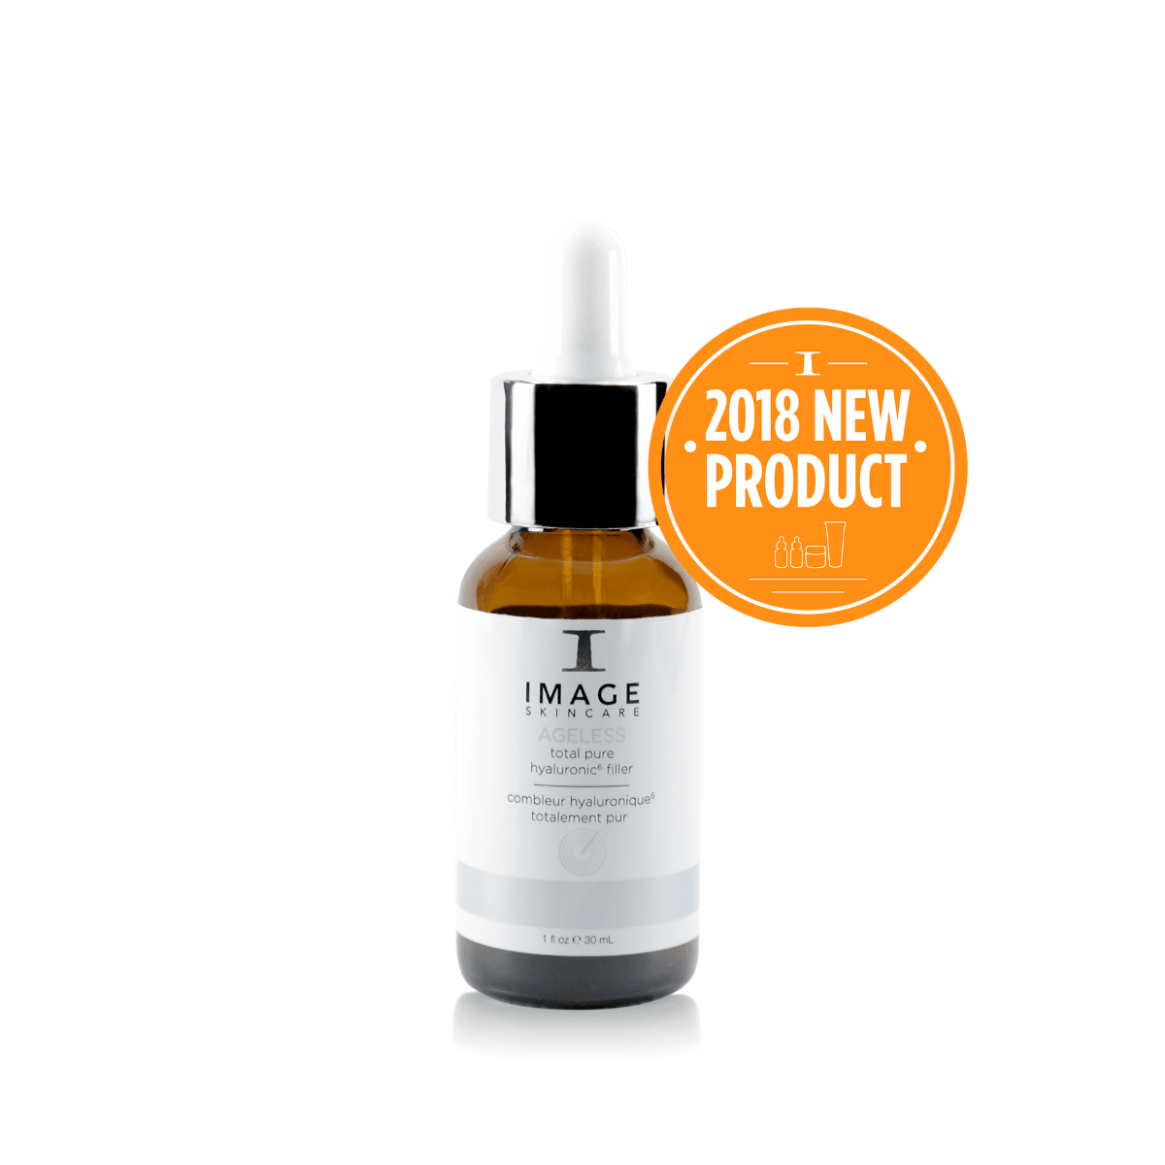 IMAGE AGELESS Total Pure Hyaluronic Acid Filler